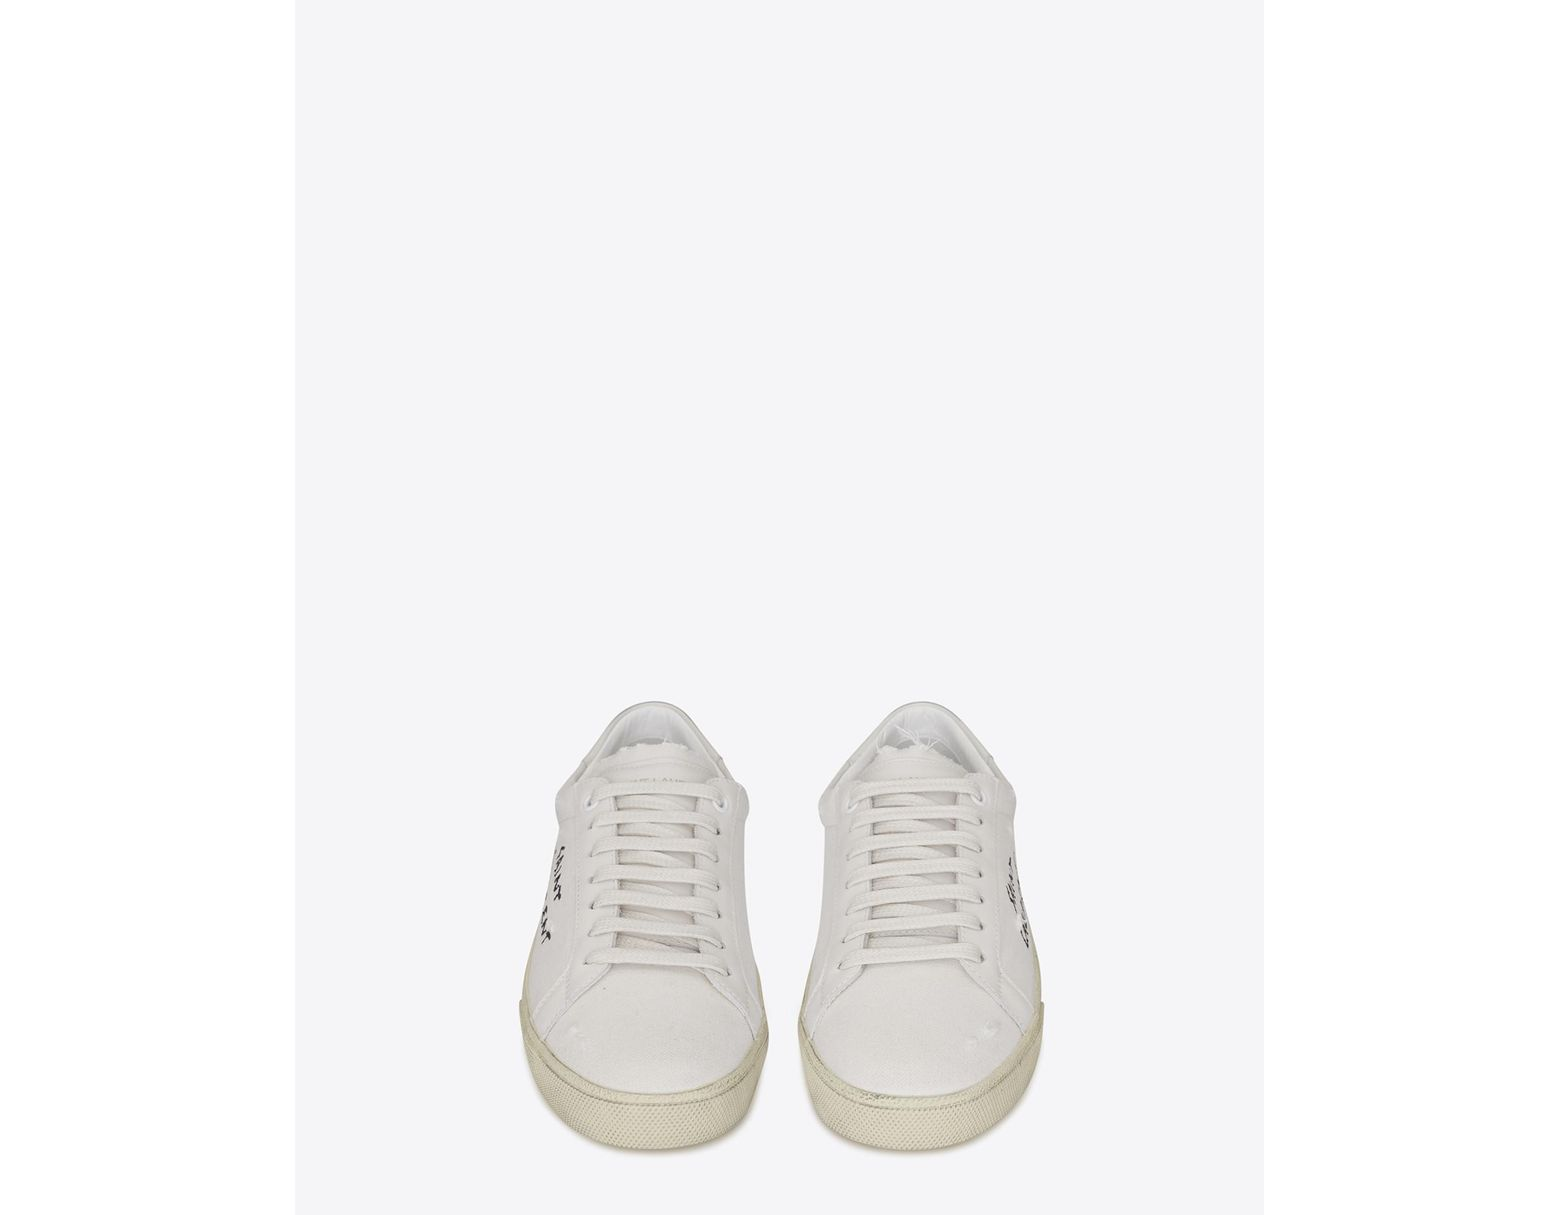 fa11cefe204 Saint Laurent Court Sl/06 Sneakers Embroidered With , In White Worn-look  Fabric And Leather in White for Men - Lyst